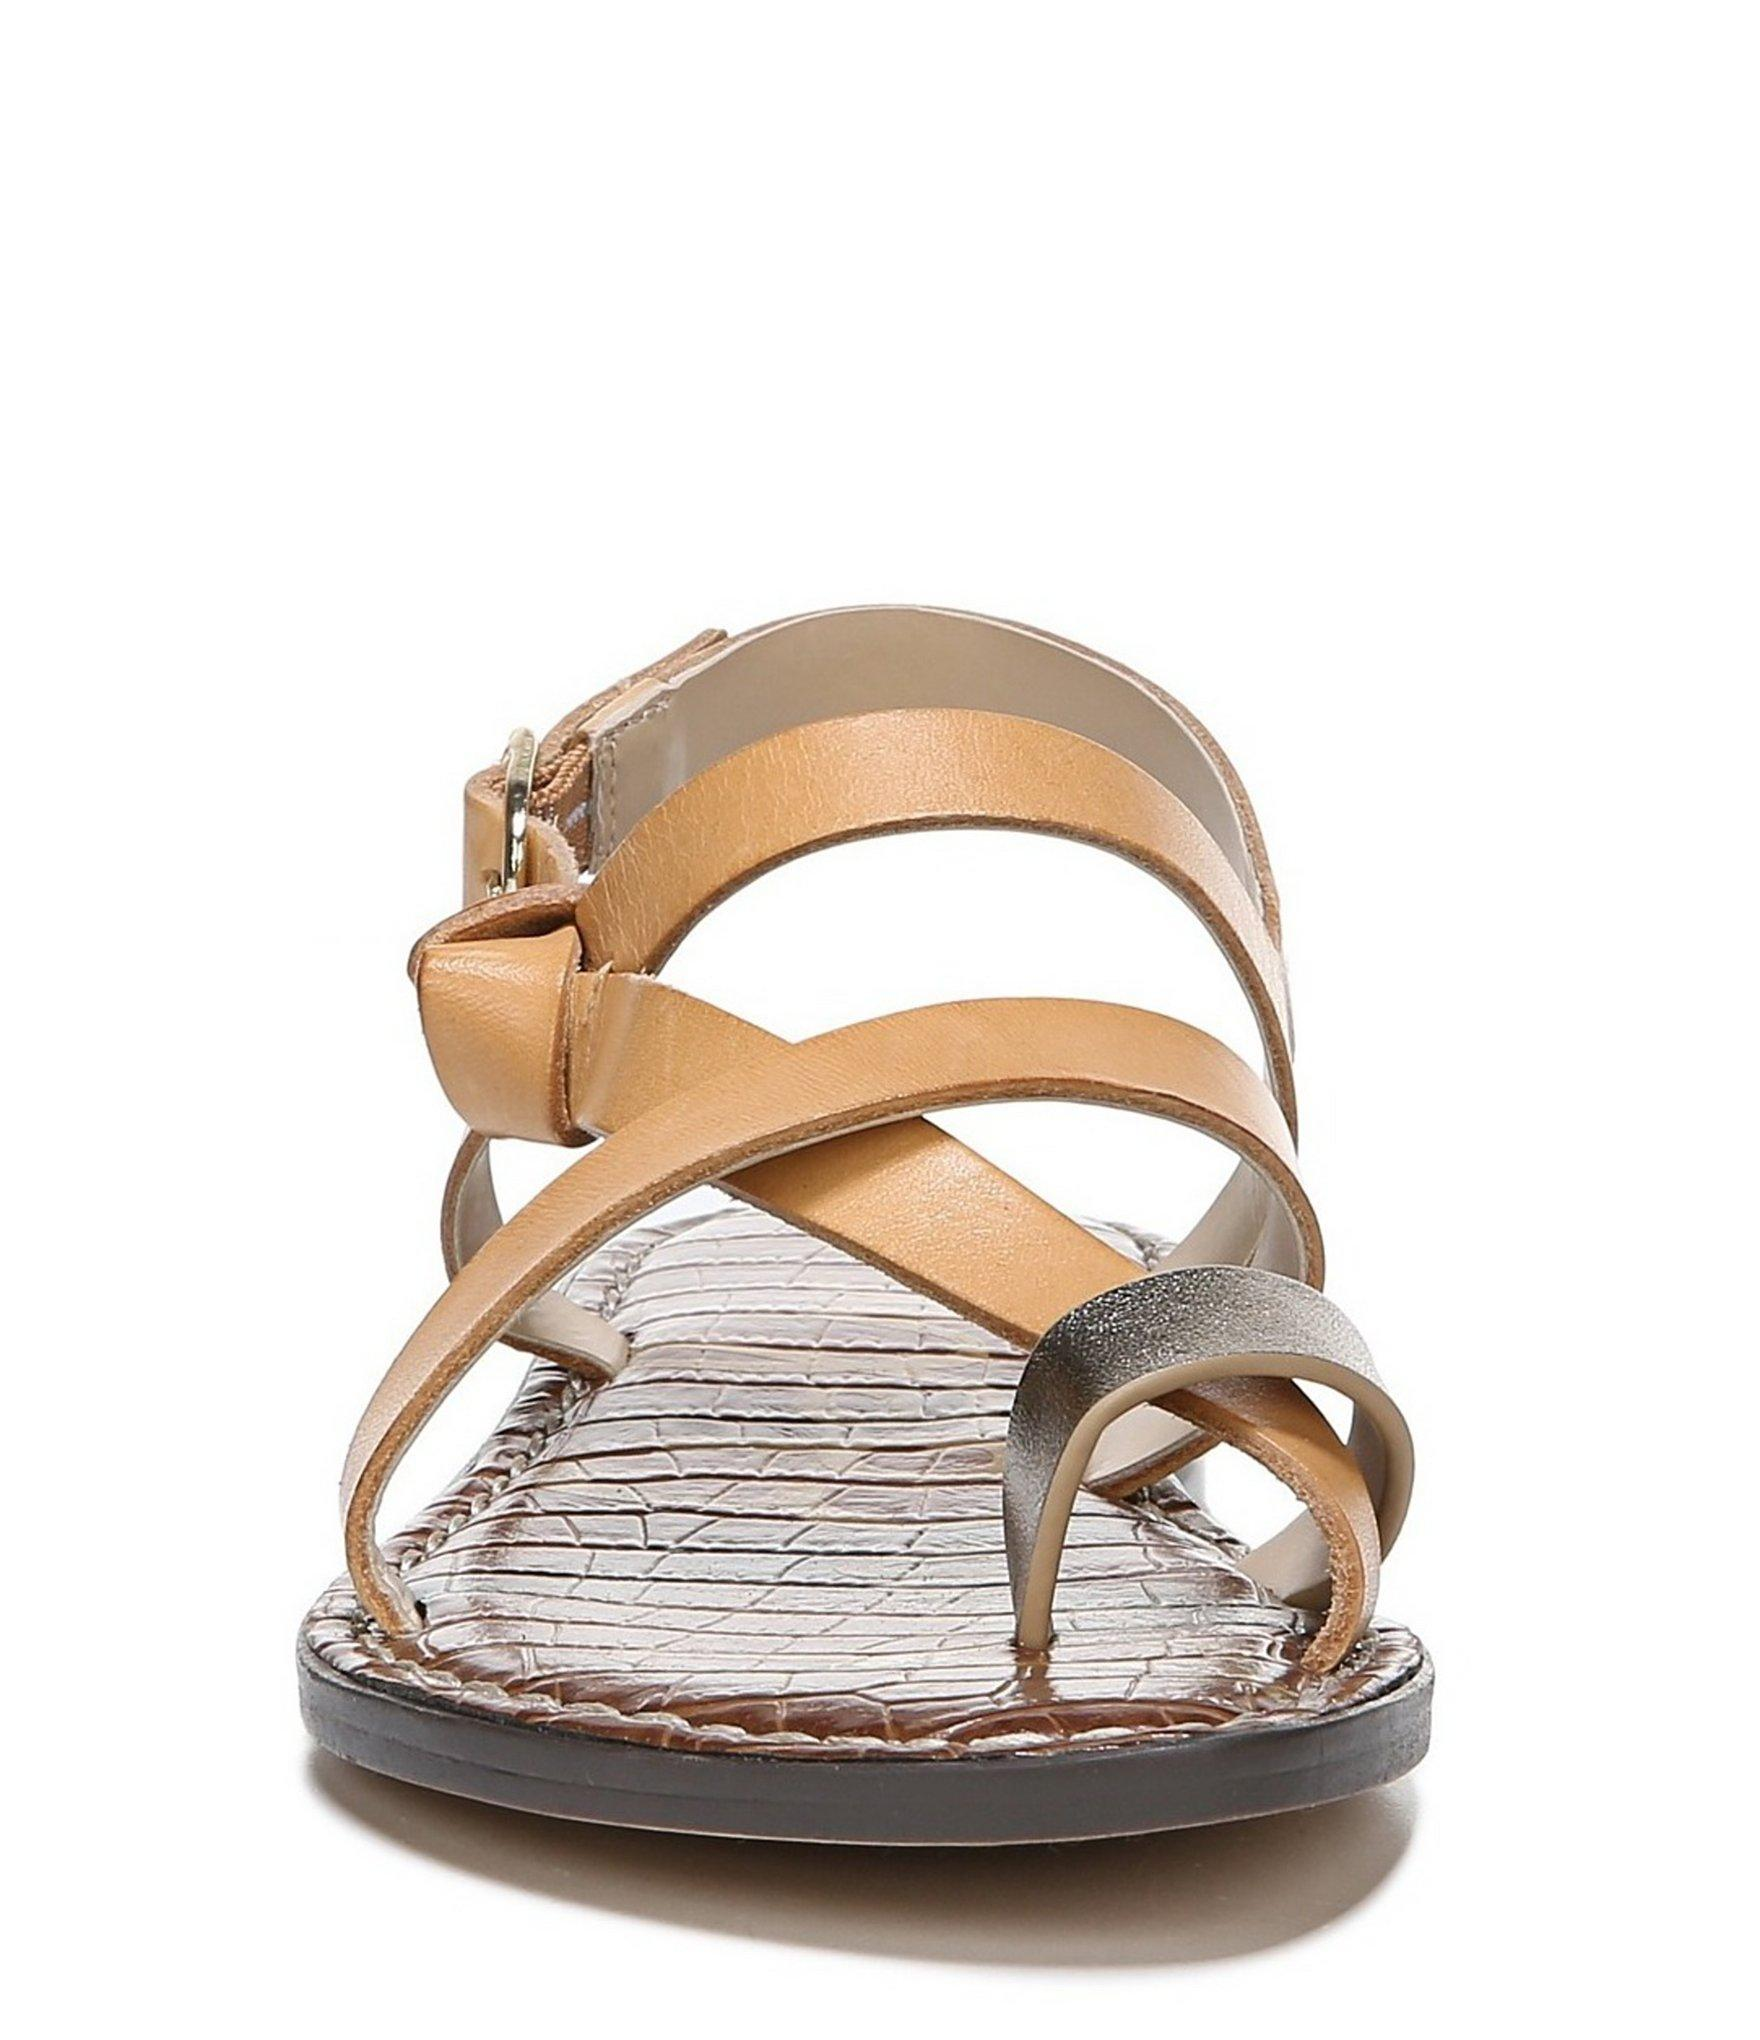 da28e09b9 Lyst - Sam Edelman Gladis Leather Sandals